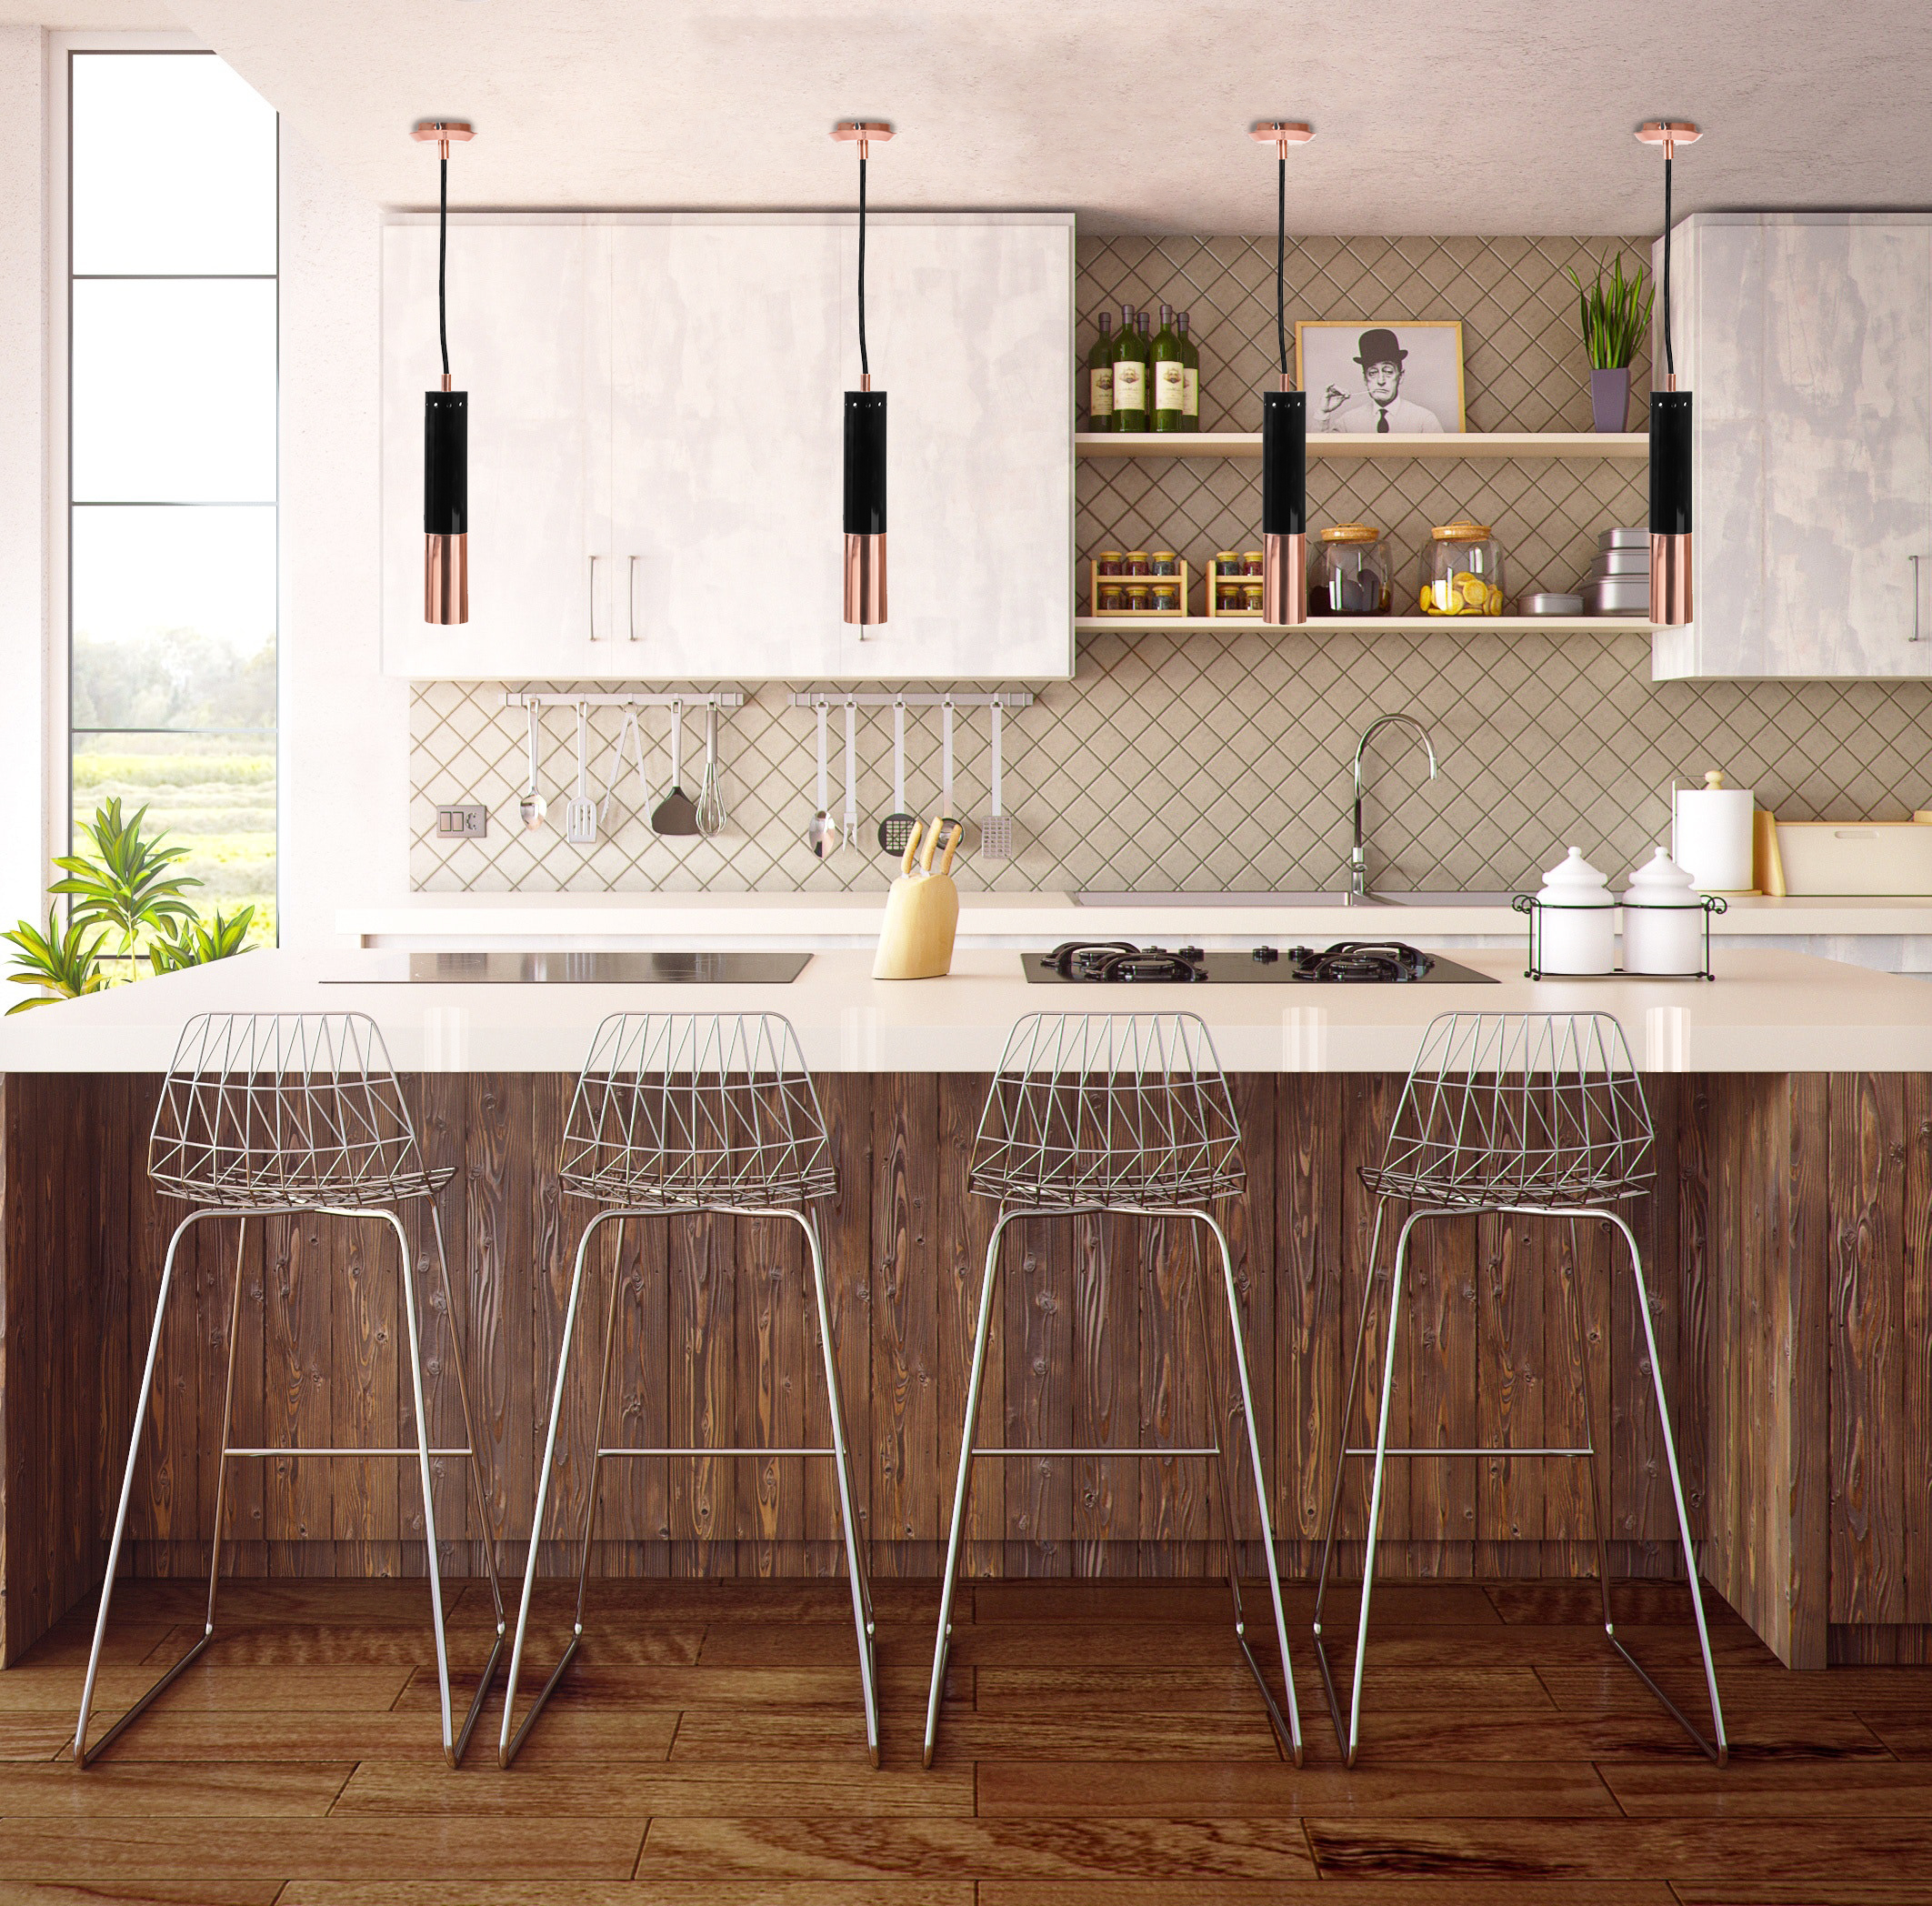 Check Out These 5 Lighting Design Trends for 2020 Before Heading to the Showroom! lighting design trends Check Out These 5 Fall Lighting Design Trends for 2020 Before Heading to the Showroom! 4 4